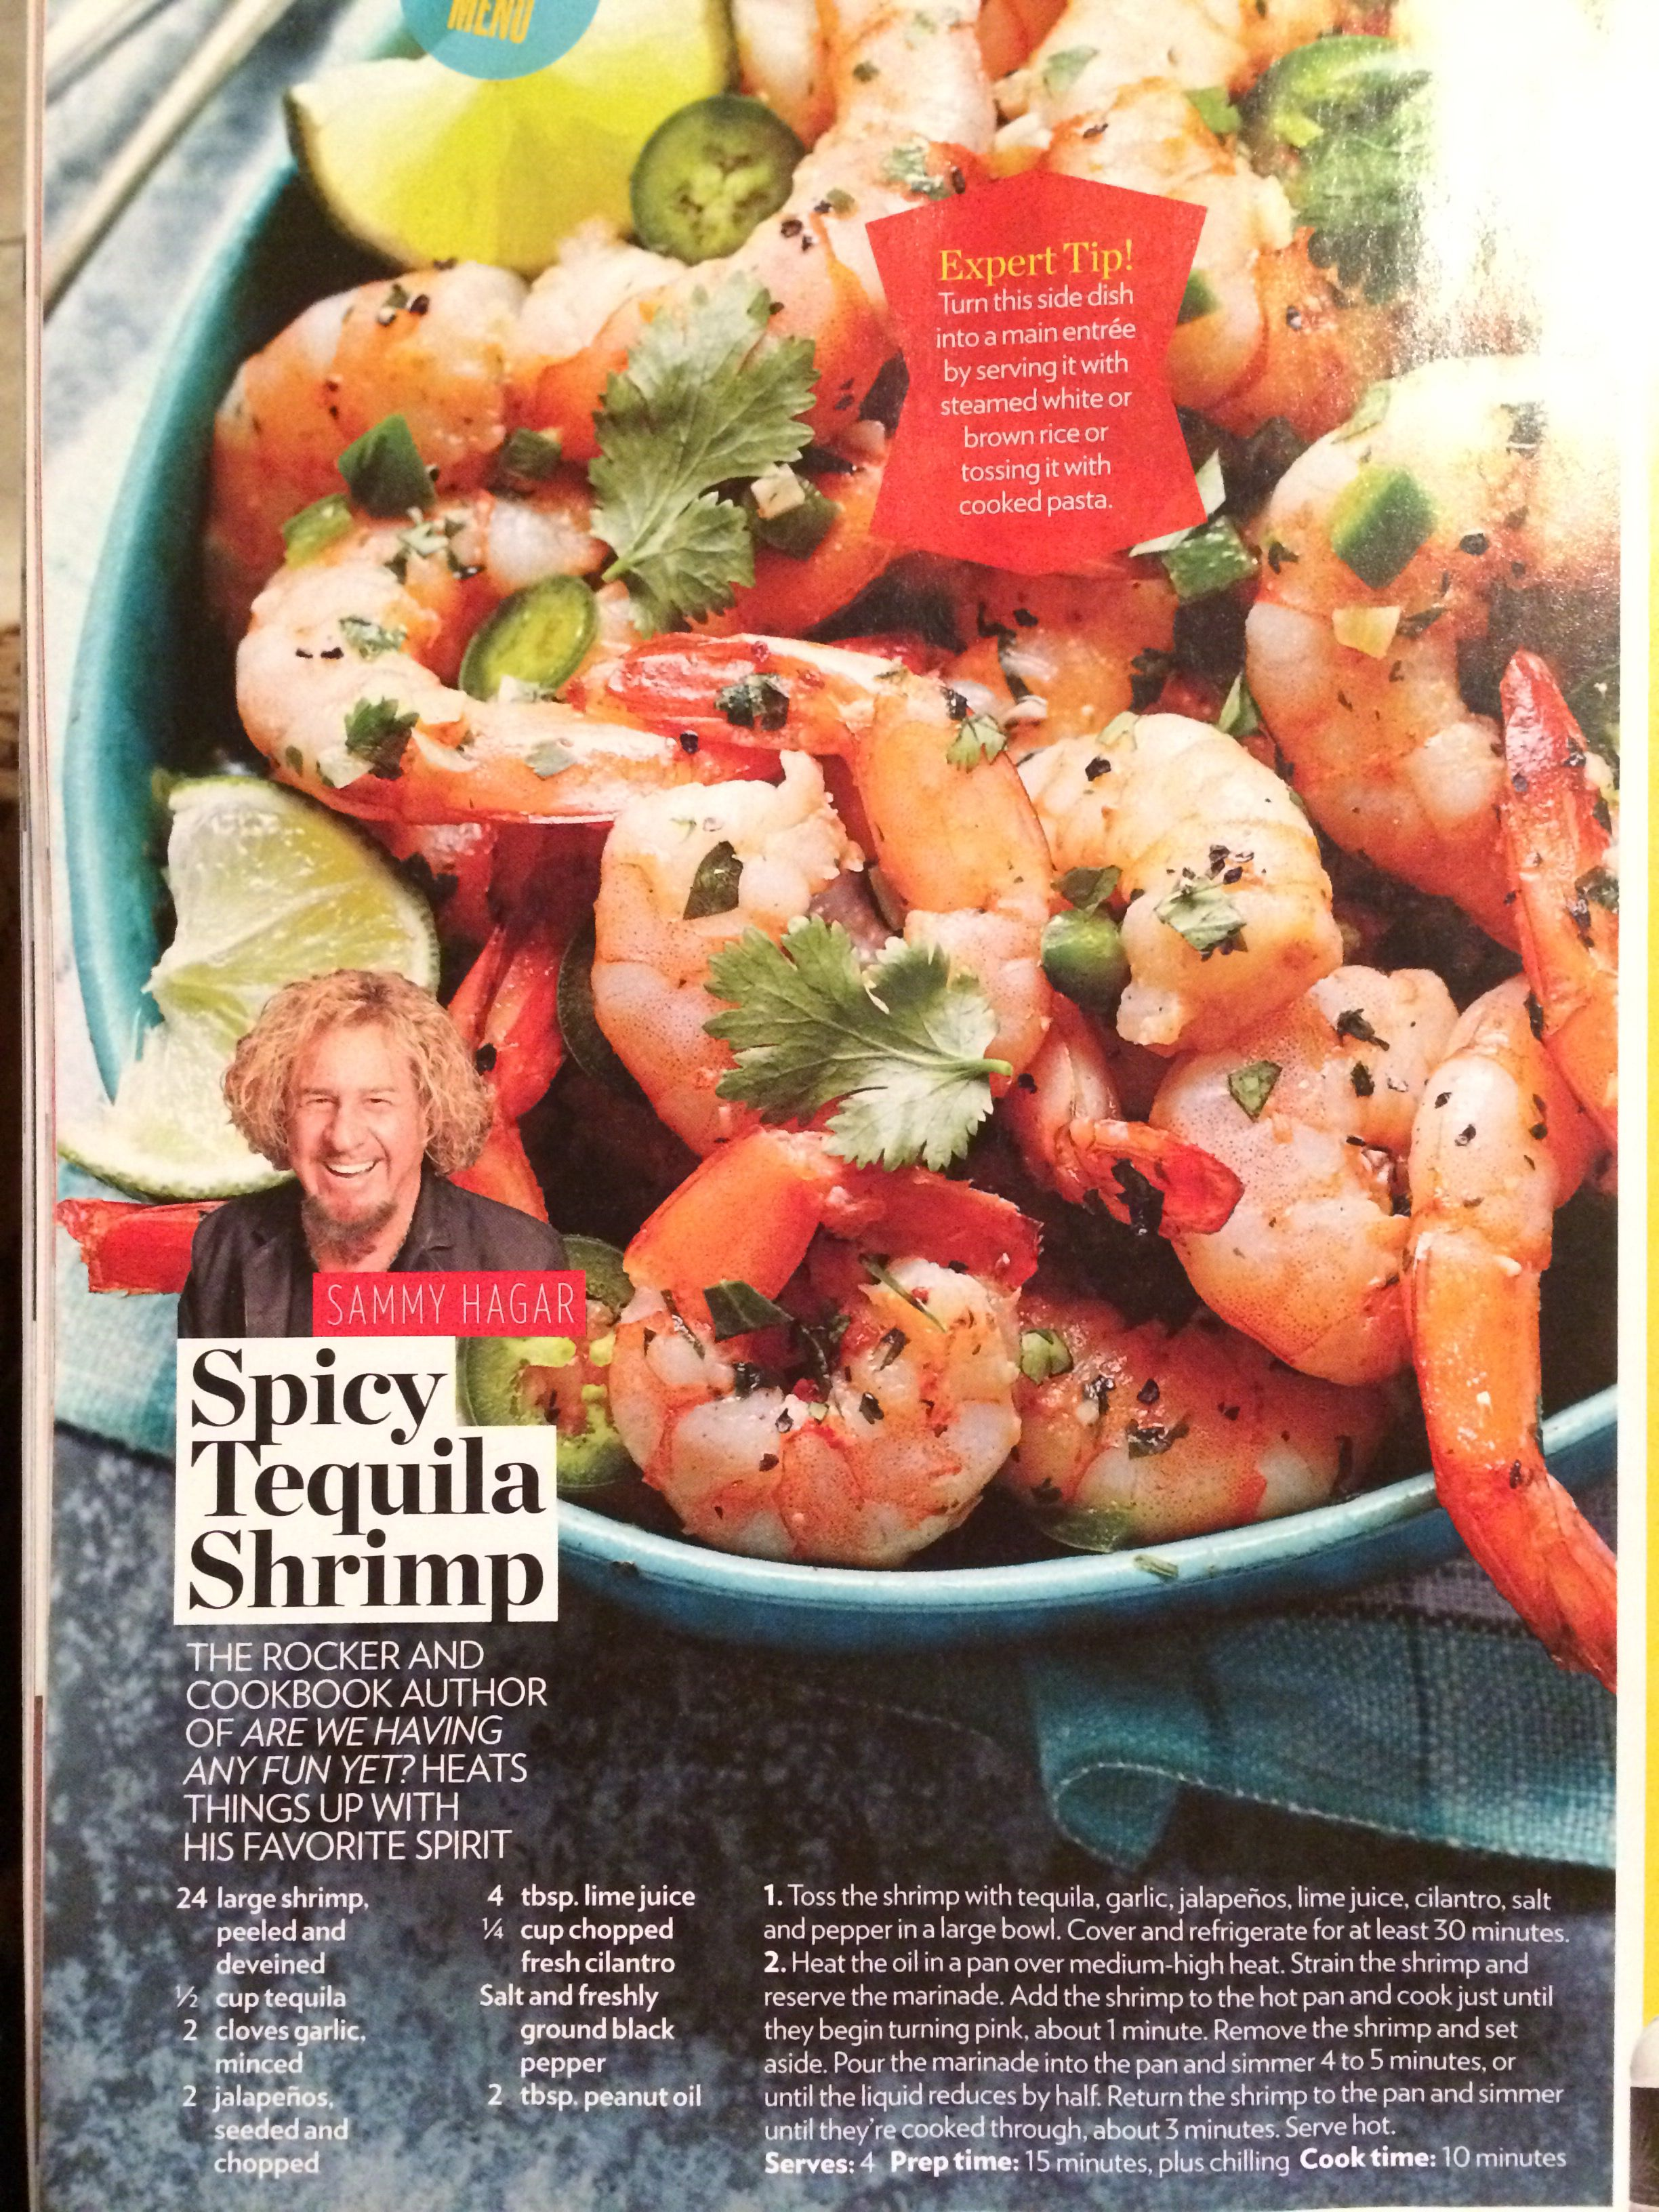 Sammy Hagar Spicy Tequila Shrimp Seafood Dishes How To Cook Pasta Healthy Recipes